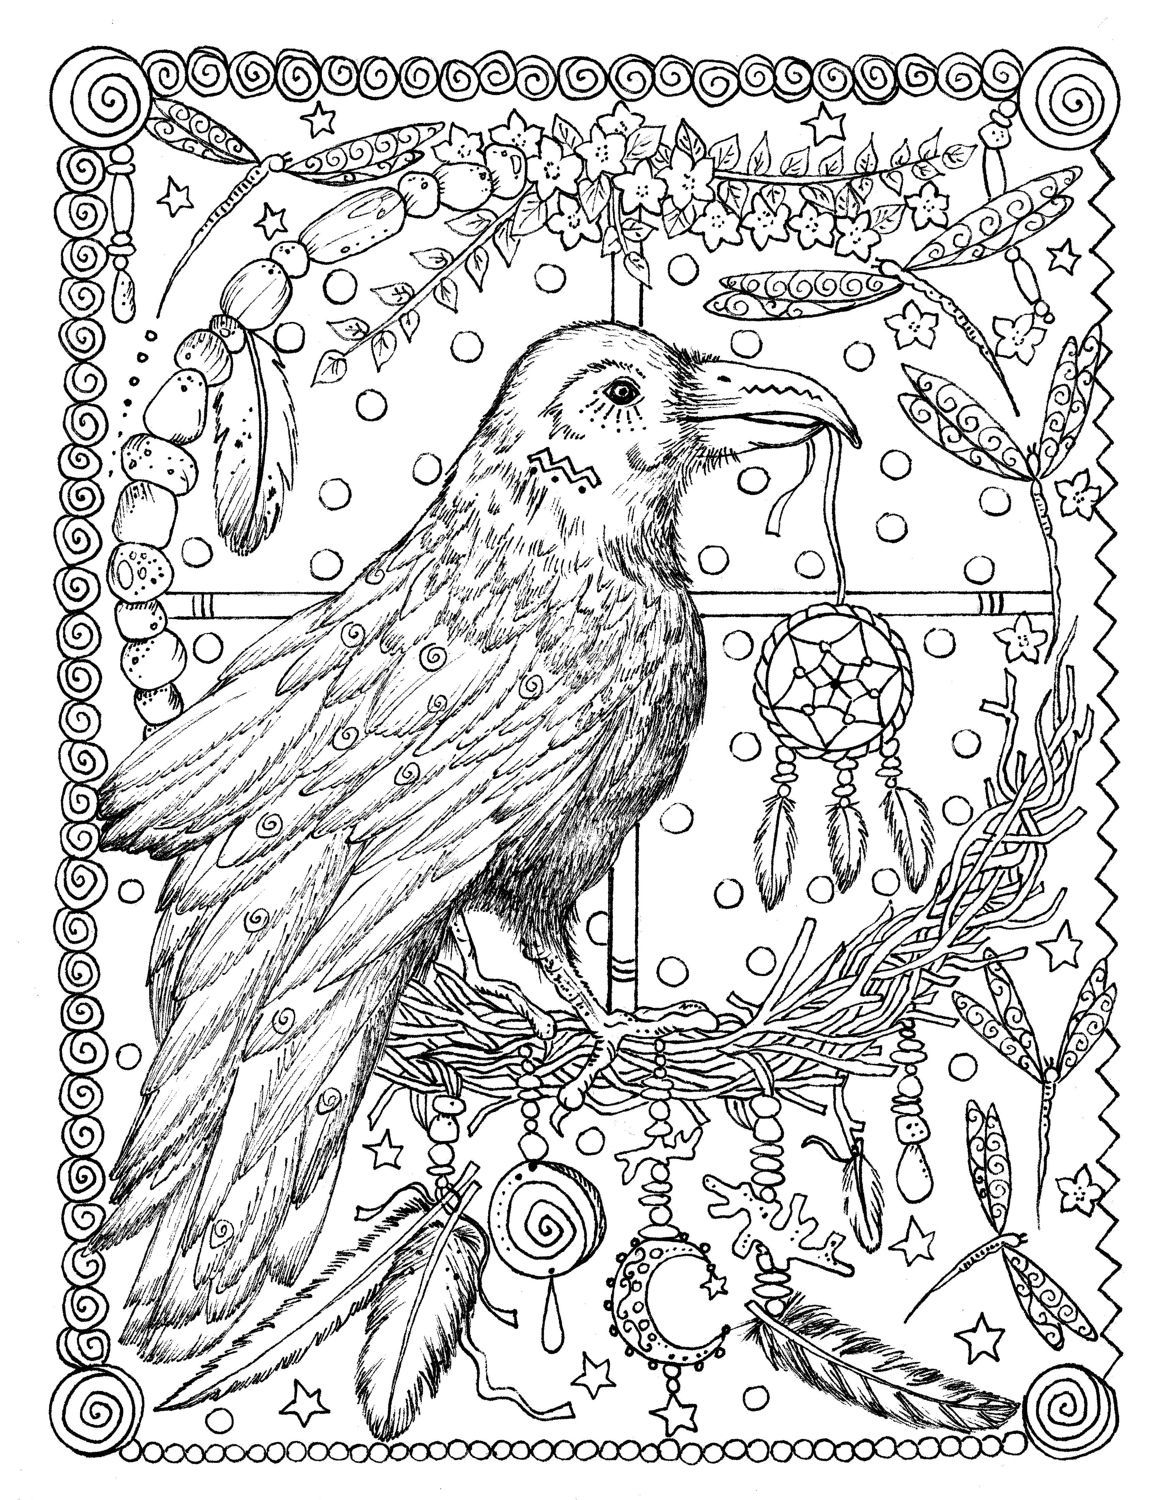 Raven Animal Coloring Pages